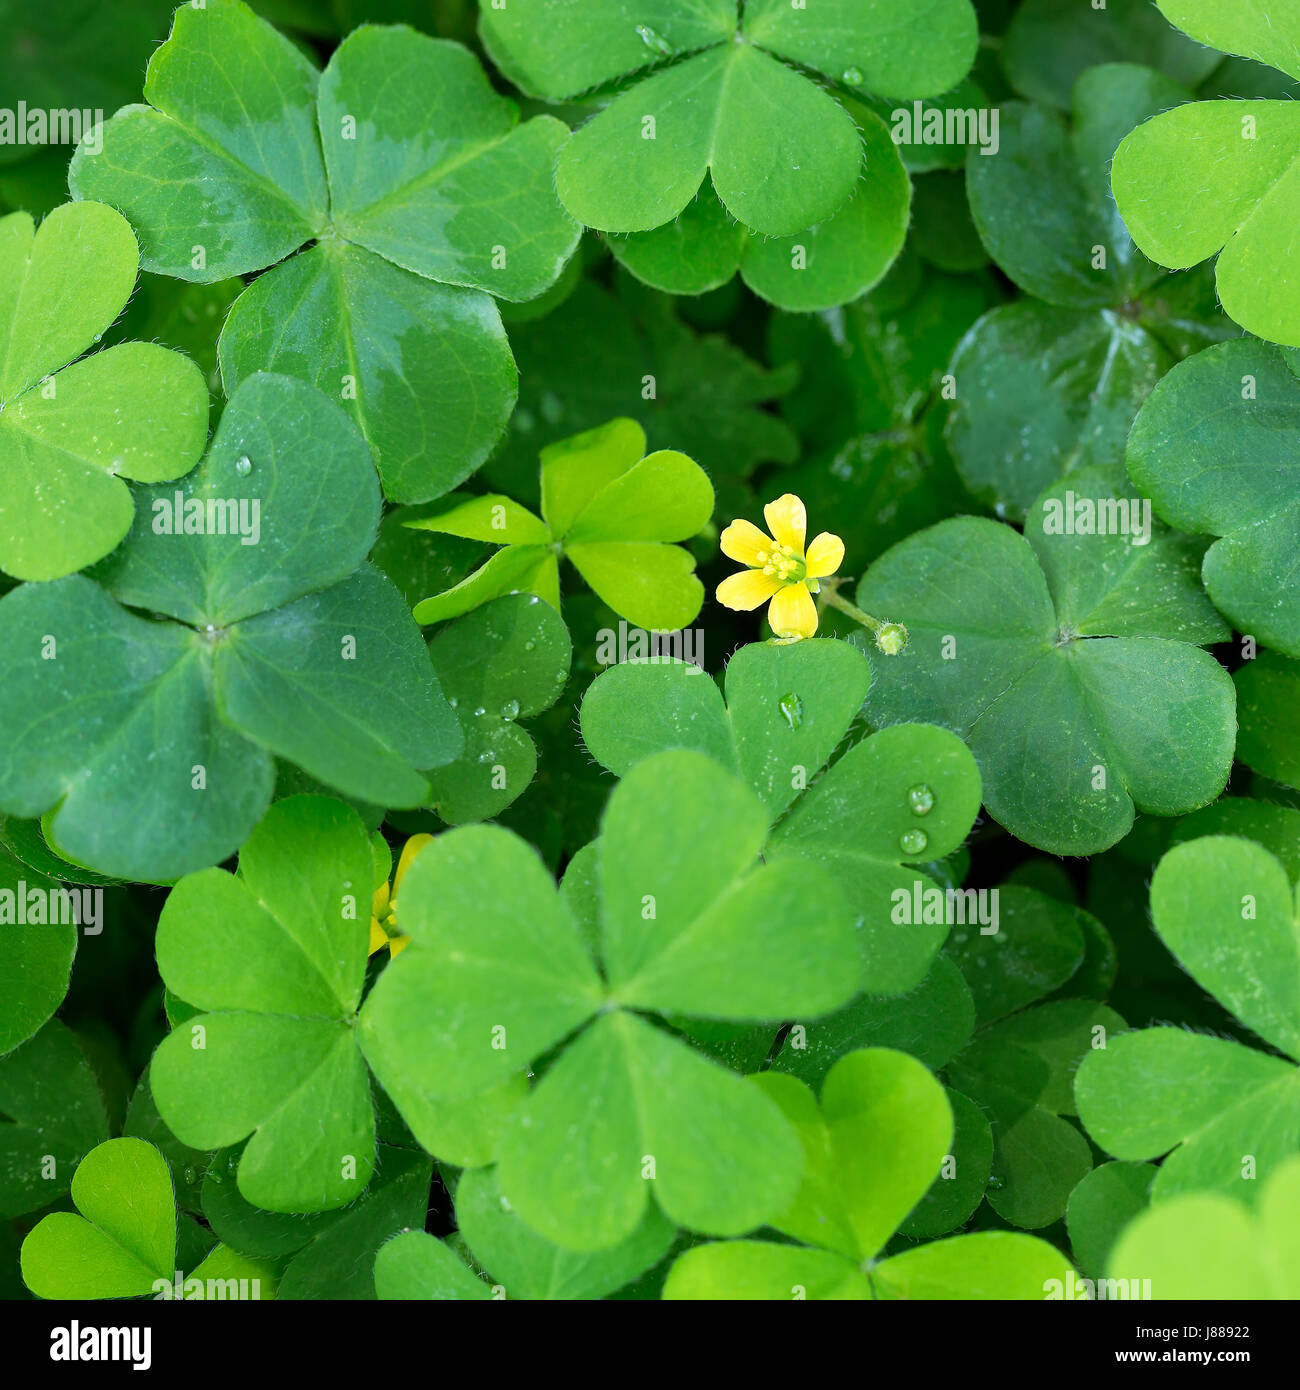 Four Leaf Clover Field Stock Photos Four Leaf Clover Field Stock